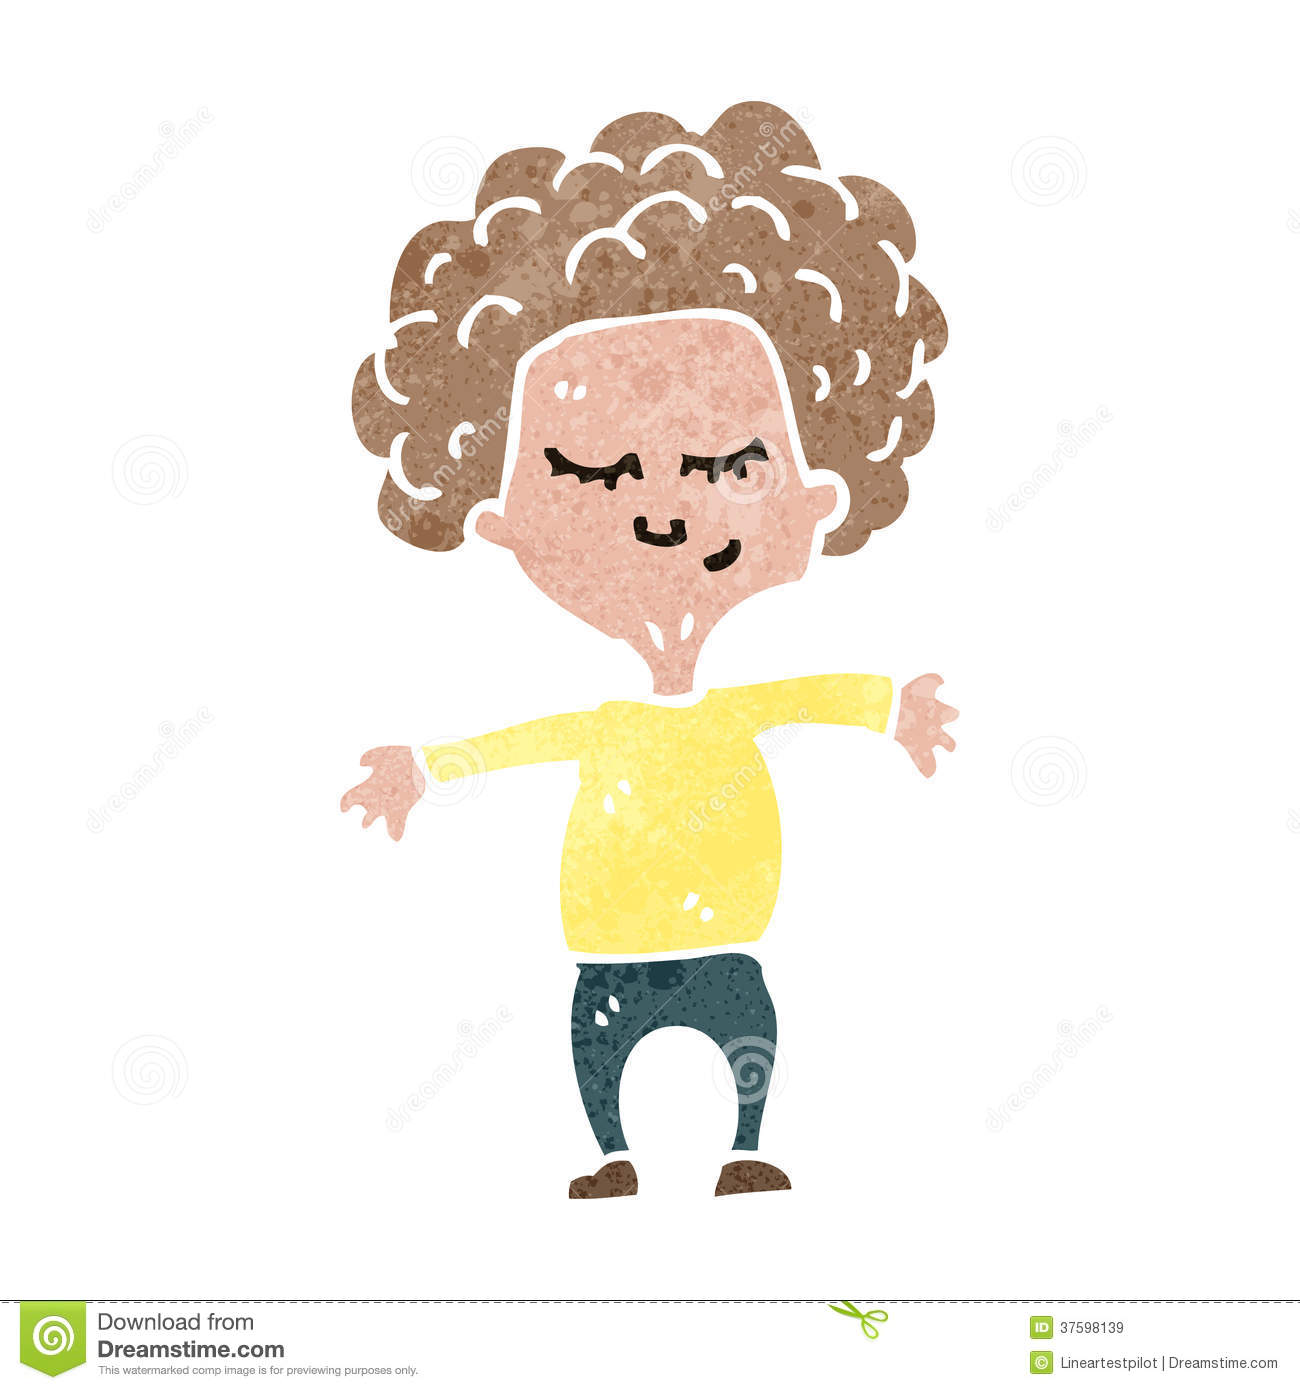 Cartoon Characters With Curly Hair : Retro cartoon curly haired boy stock vector image